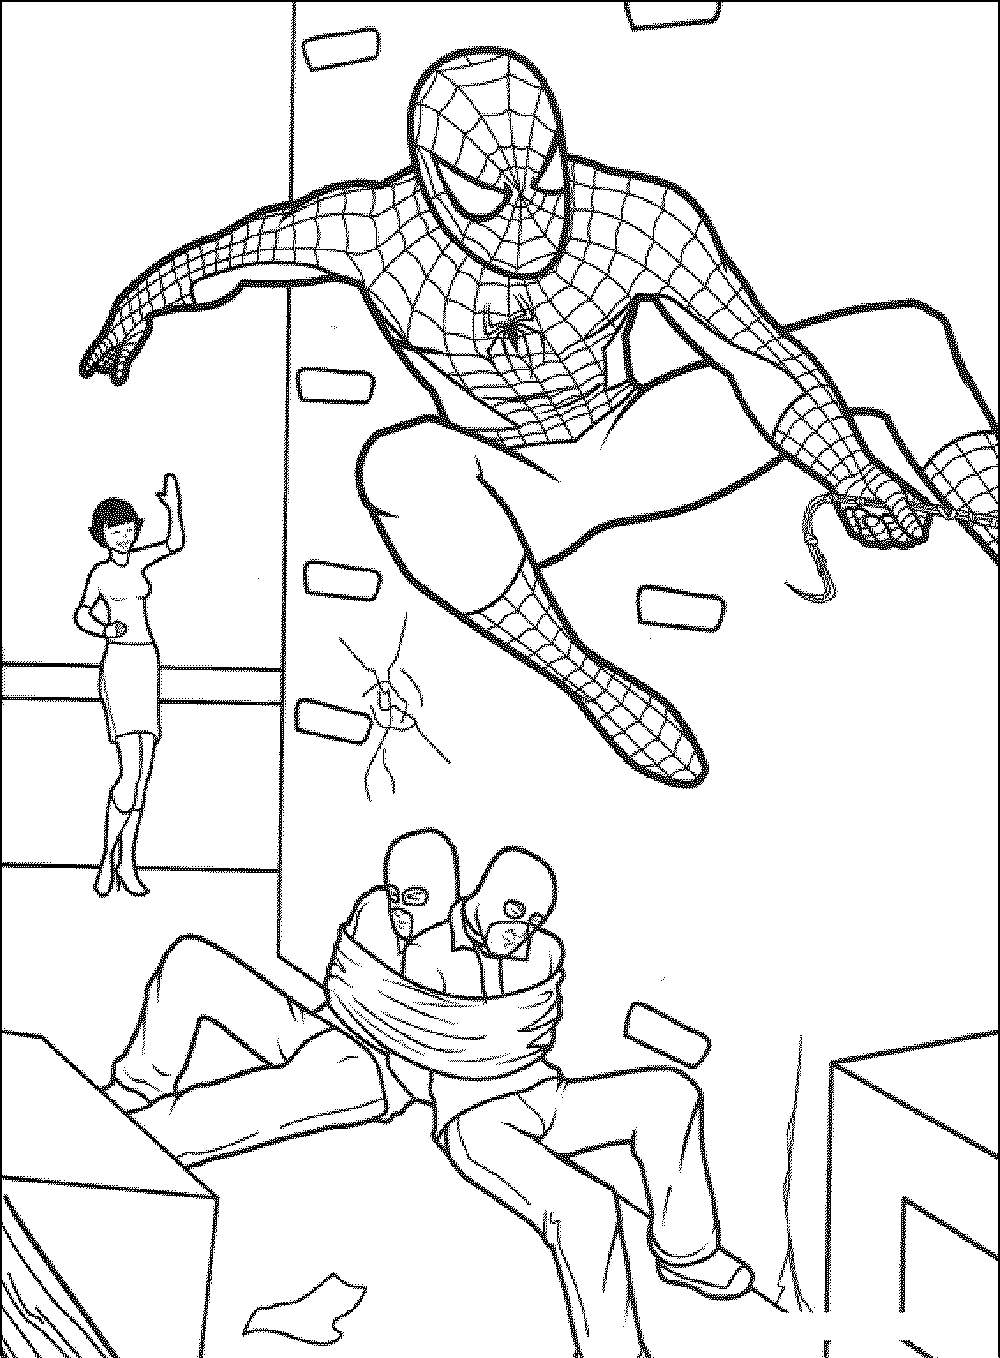 Spiderman coloring games - Shop Related Products